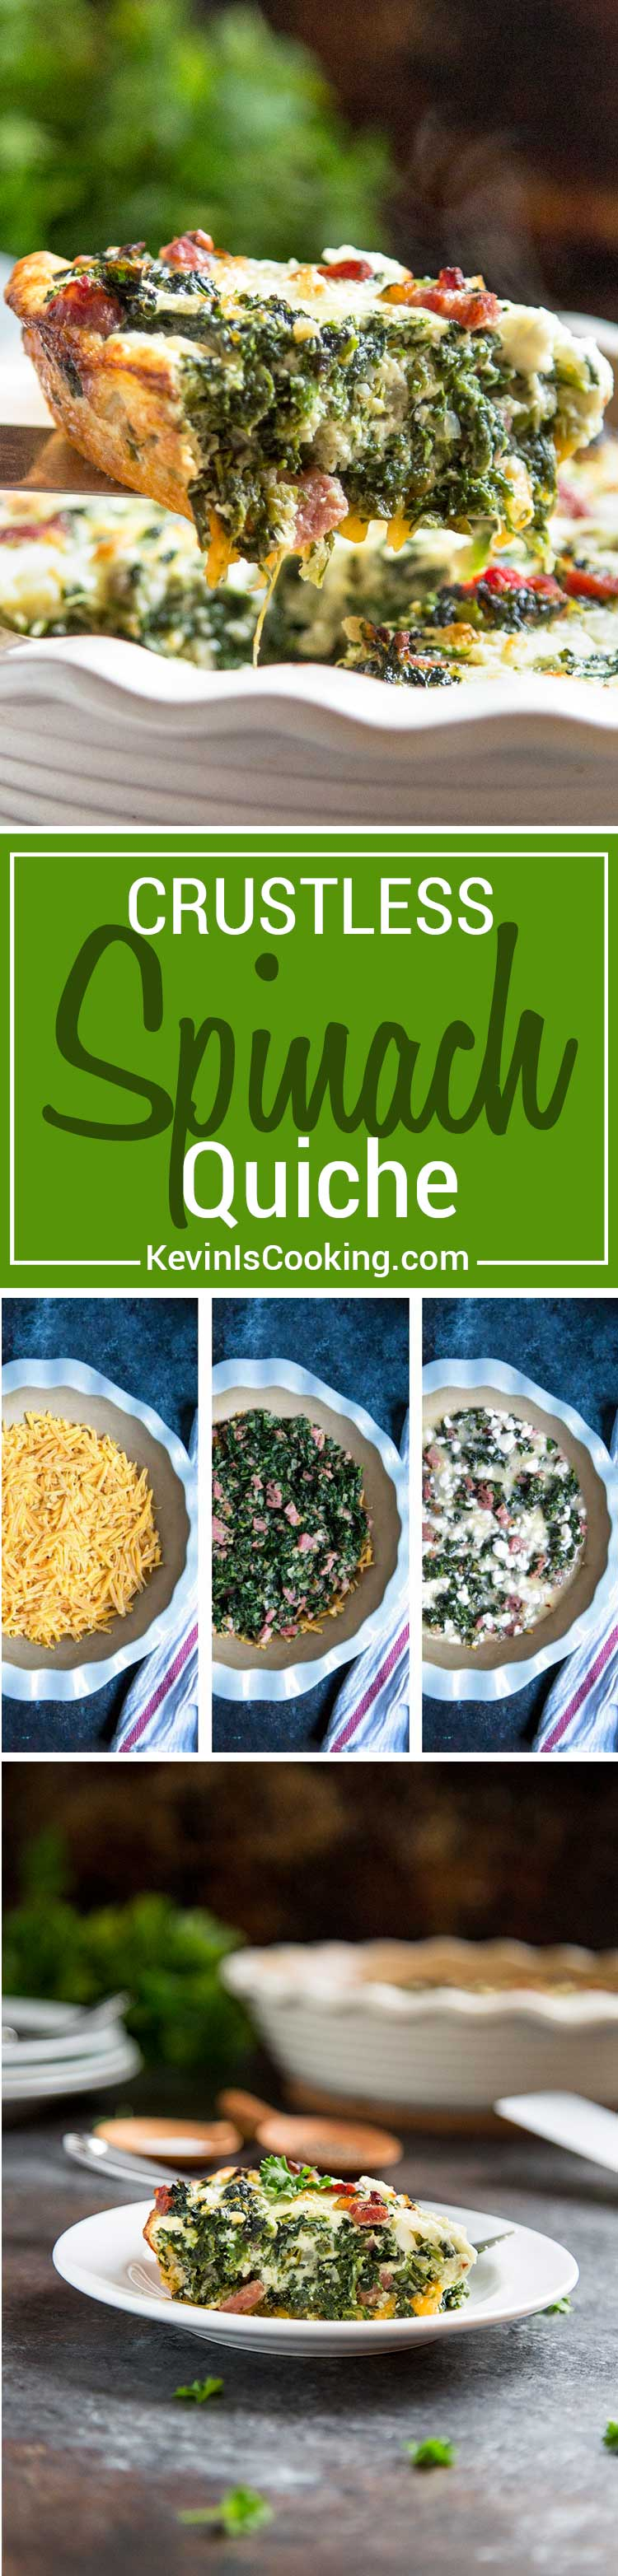 Perfect for the holiday breakfast table! A healthy alternate to a traditional quiche with crust, this Crustless Spinach Quiche with Ham is packed with spinach, cheeses and ham for that lighter breakfast touch.